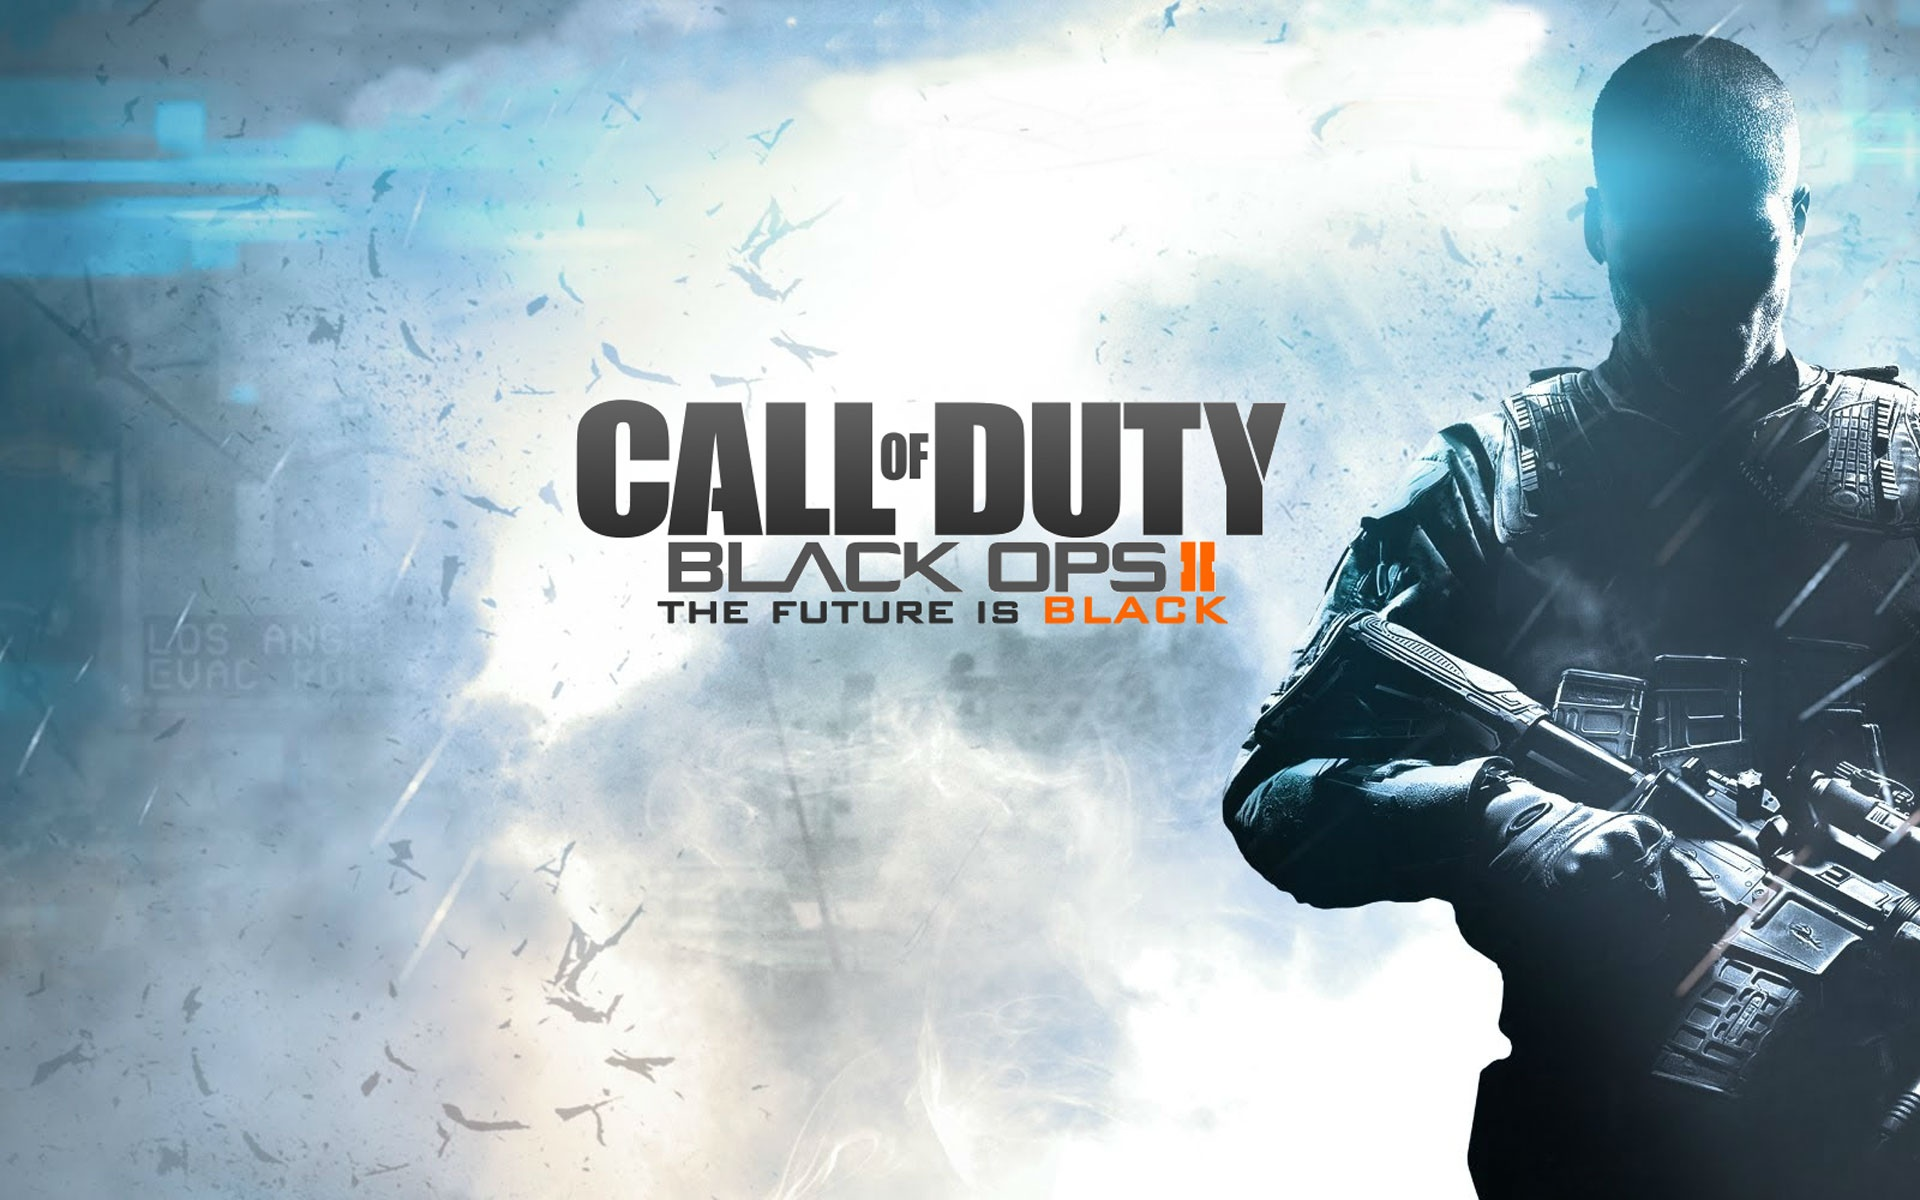 Call of duty black ops 2 wallpapers i hd call of duty black ops 2 call of duty 9 black ops 2 soldier wallpaper 1920x1200 voltagebd Image collections